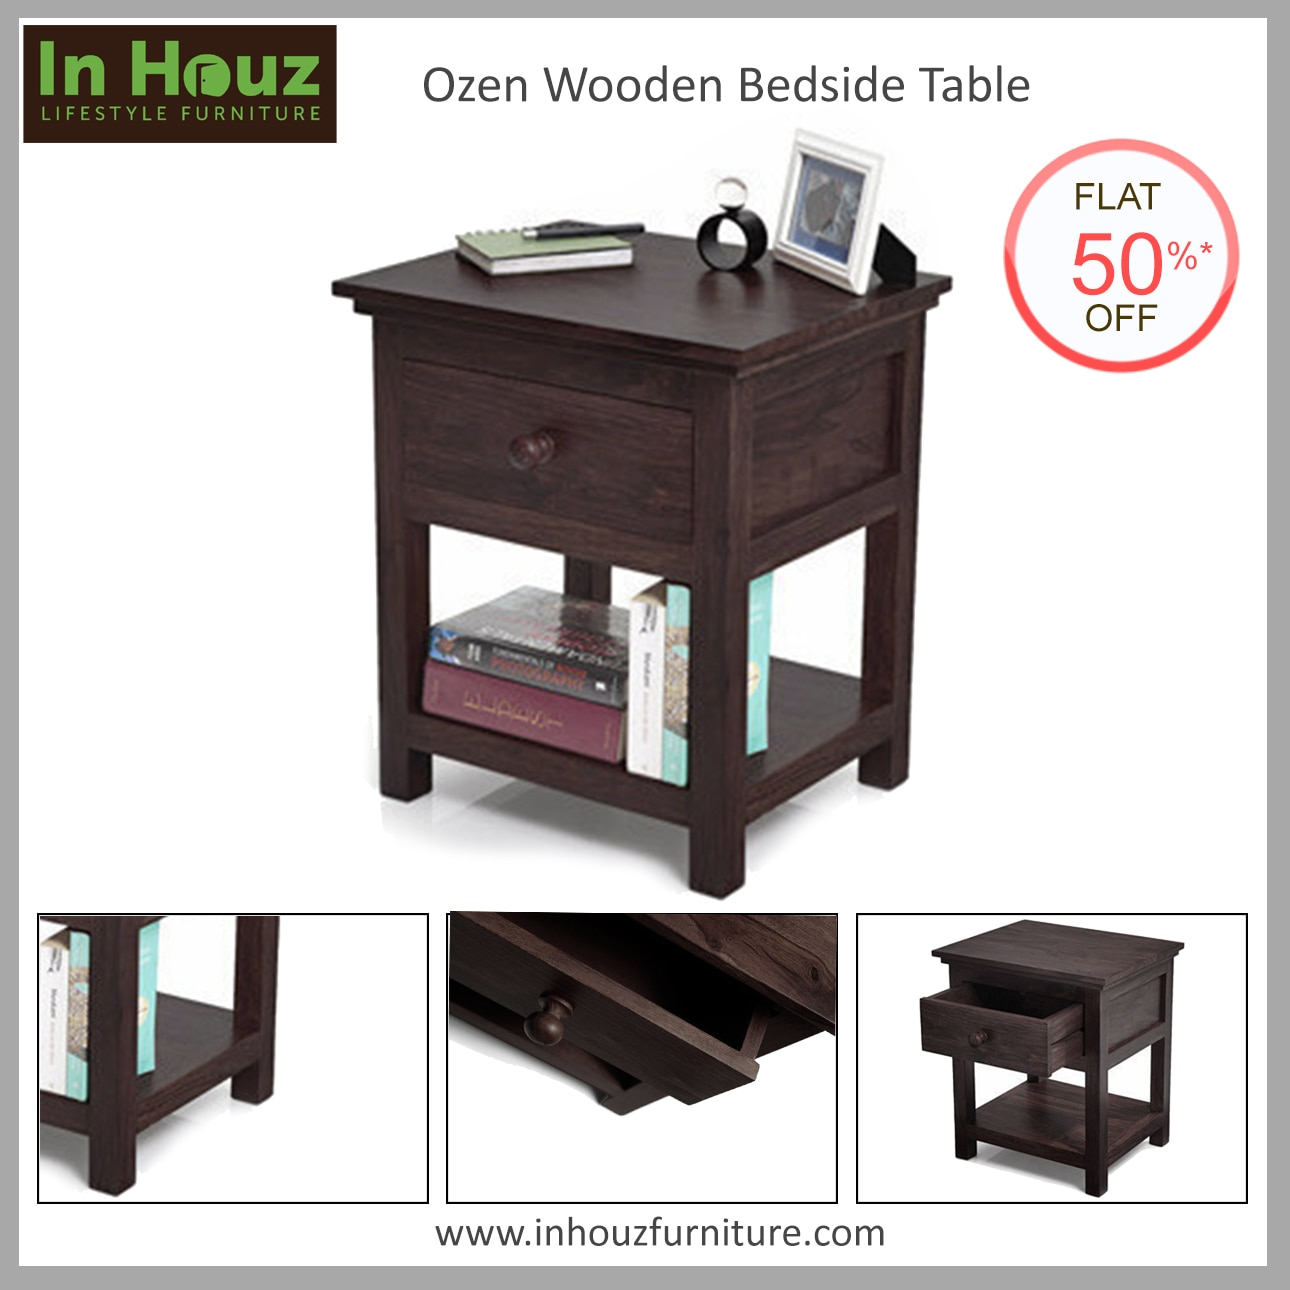 Complement your bedroom furniture with our bedside table.  #BedsideTable #BedsideTableDesign #BedsideTableOnline #BedsideTableOnlineIndia #BedroomFurniture #SolidwoodBedside #BedCabinets #InHouz #InHouzFurniture #SolidwoodFurniture #OnlineFurnitureShoppingInHyderabad  Pick your favourite now www.inhouzfurniture.com